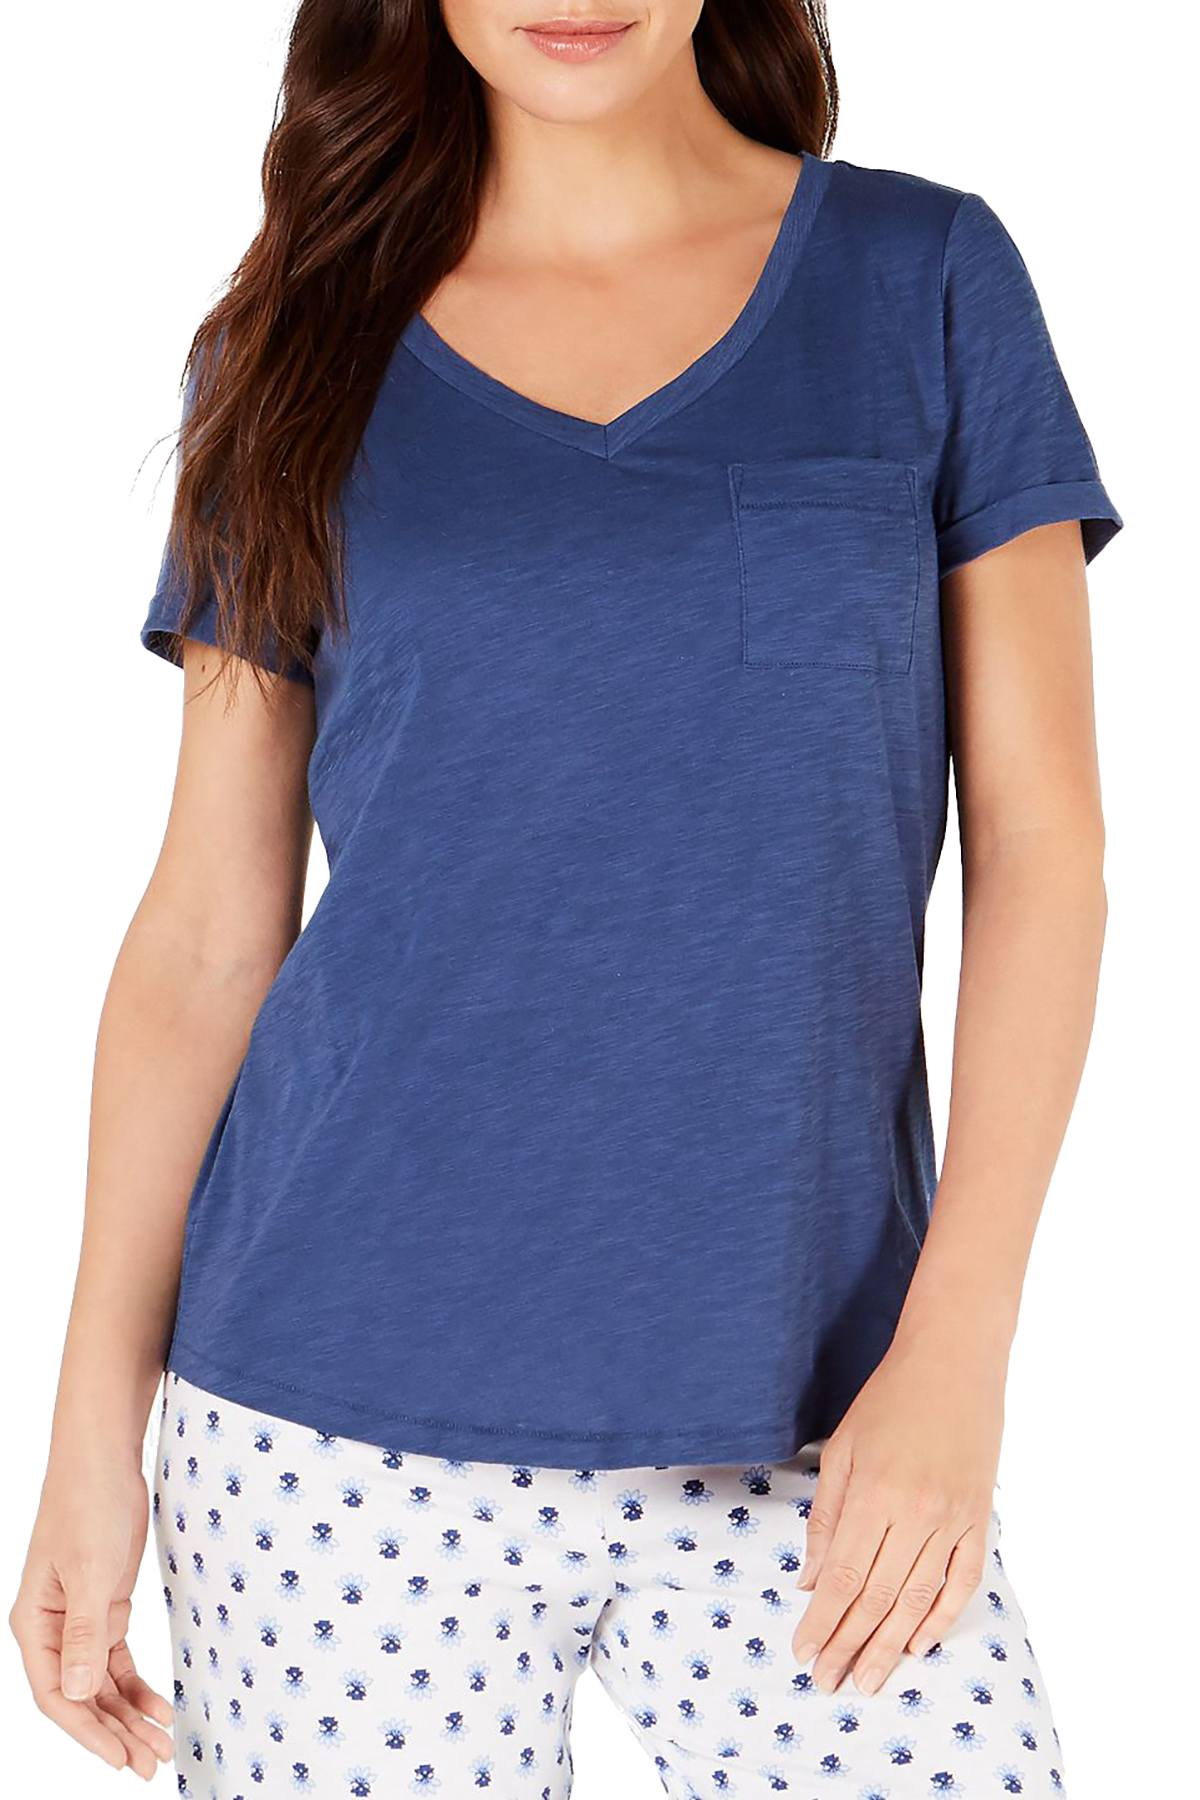 Charter Club Knit Lounge Tee in Galaxy Blue